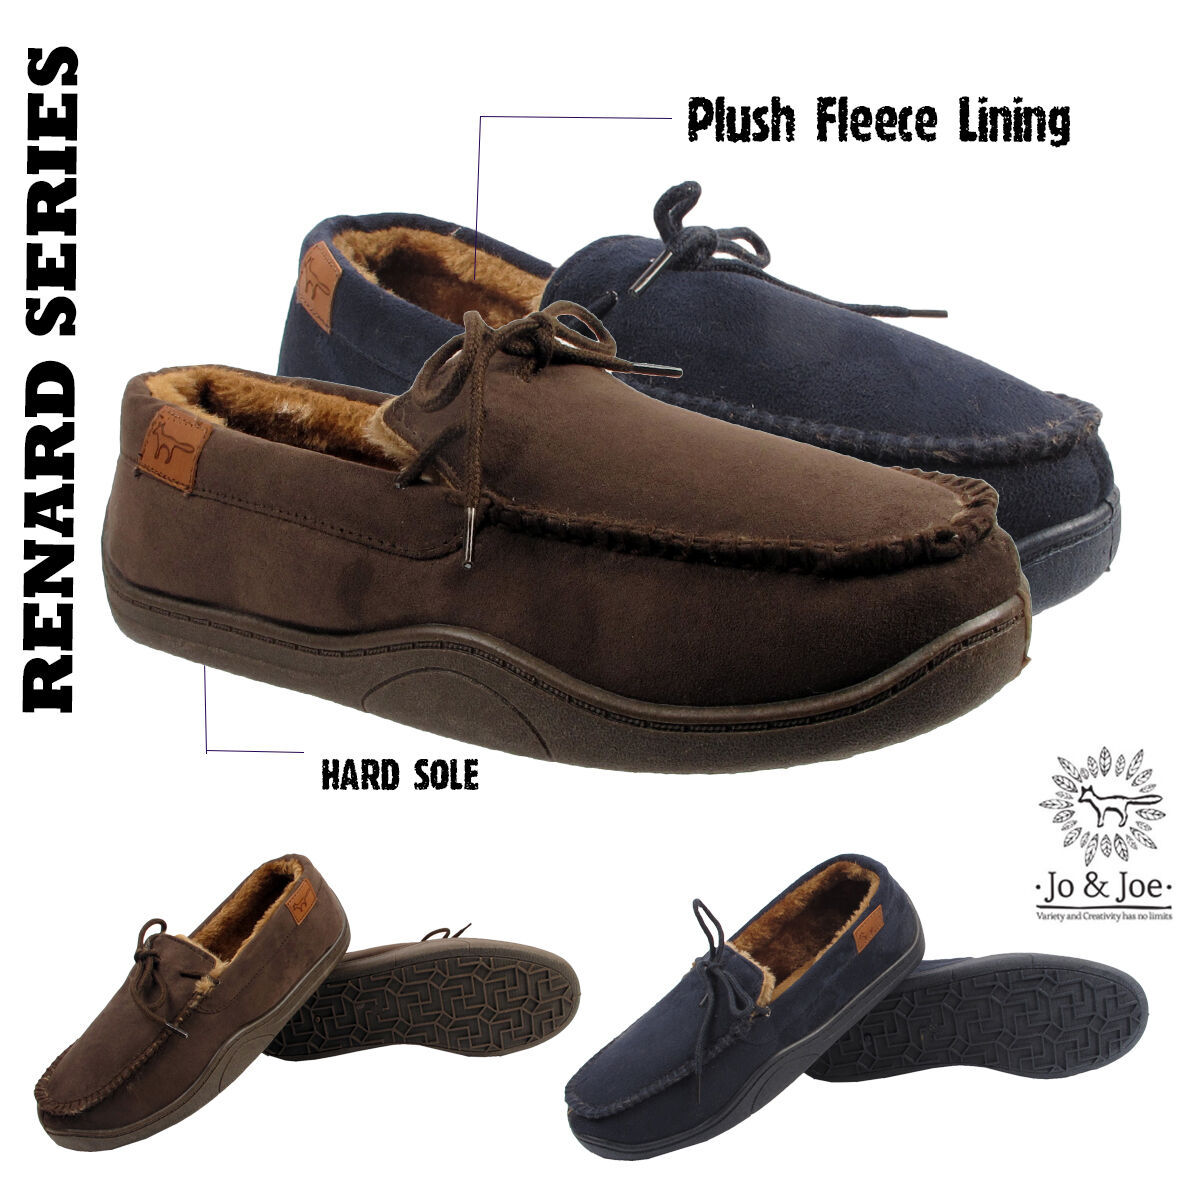 MENS MOCCASINS SLIPPERS LOAFERS FUR LINED WINTER WARM 9 SHOES SIZE 7 8 9 WARM 10 11 12 074155